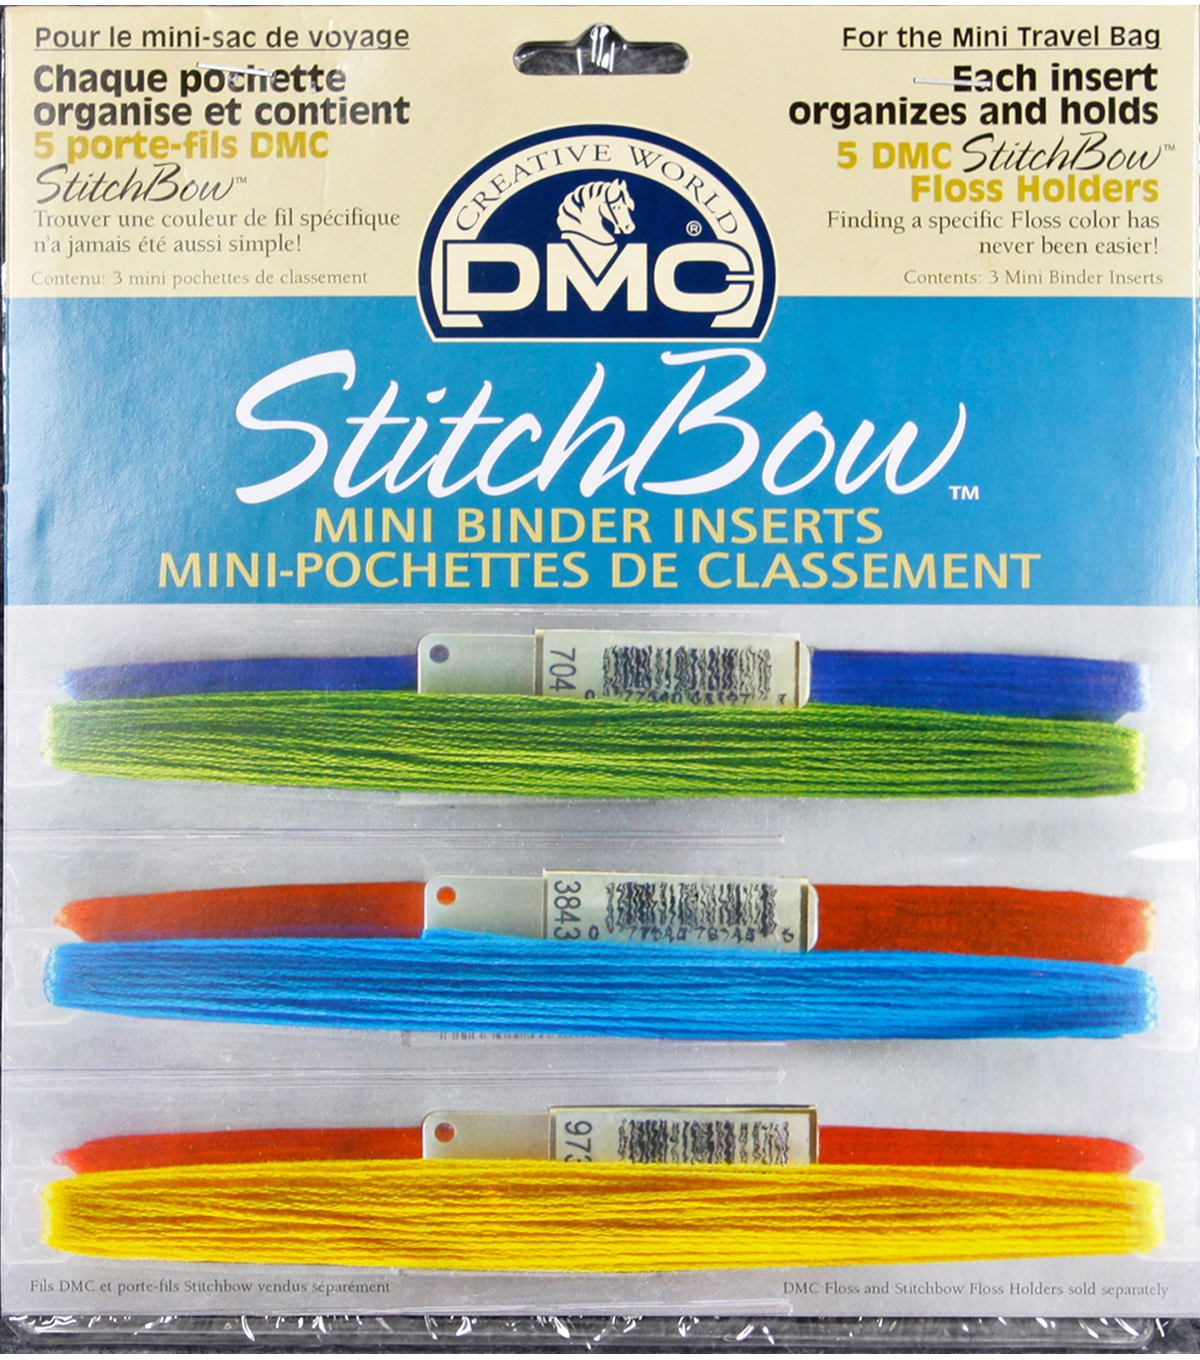 DMC StitchBow Mini Needlework Travel Bag